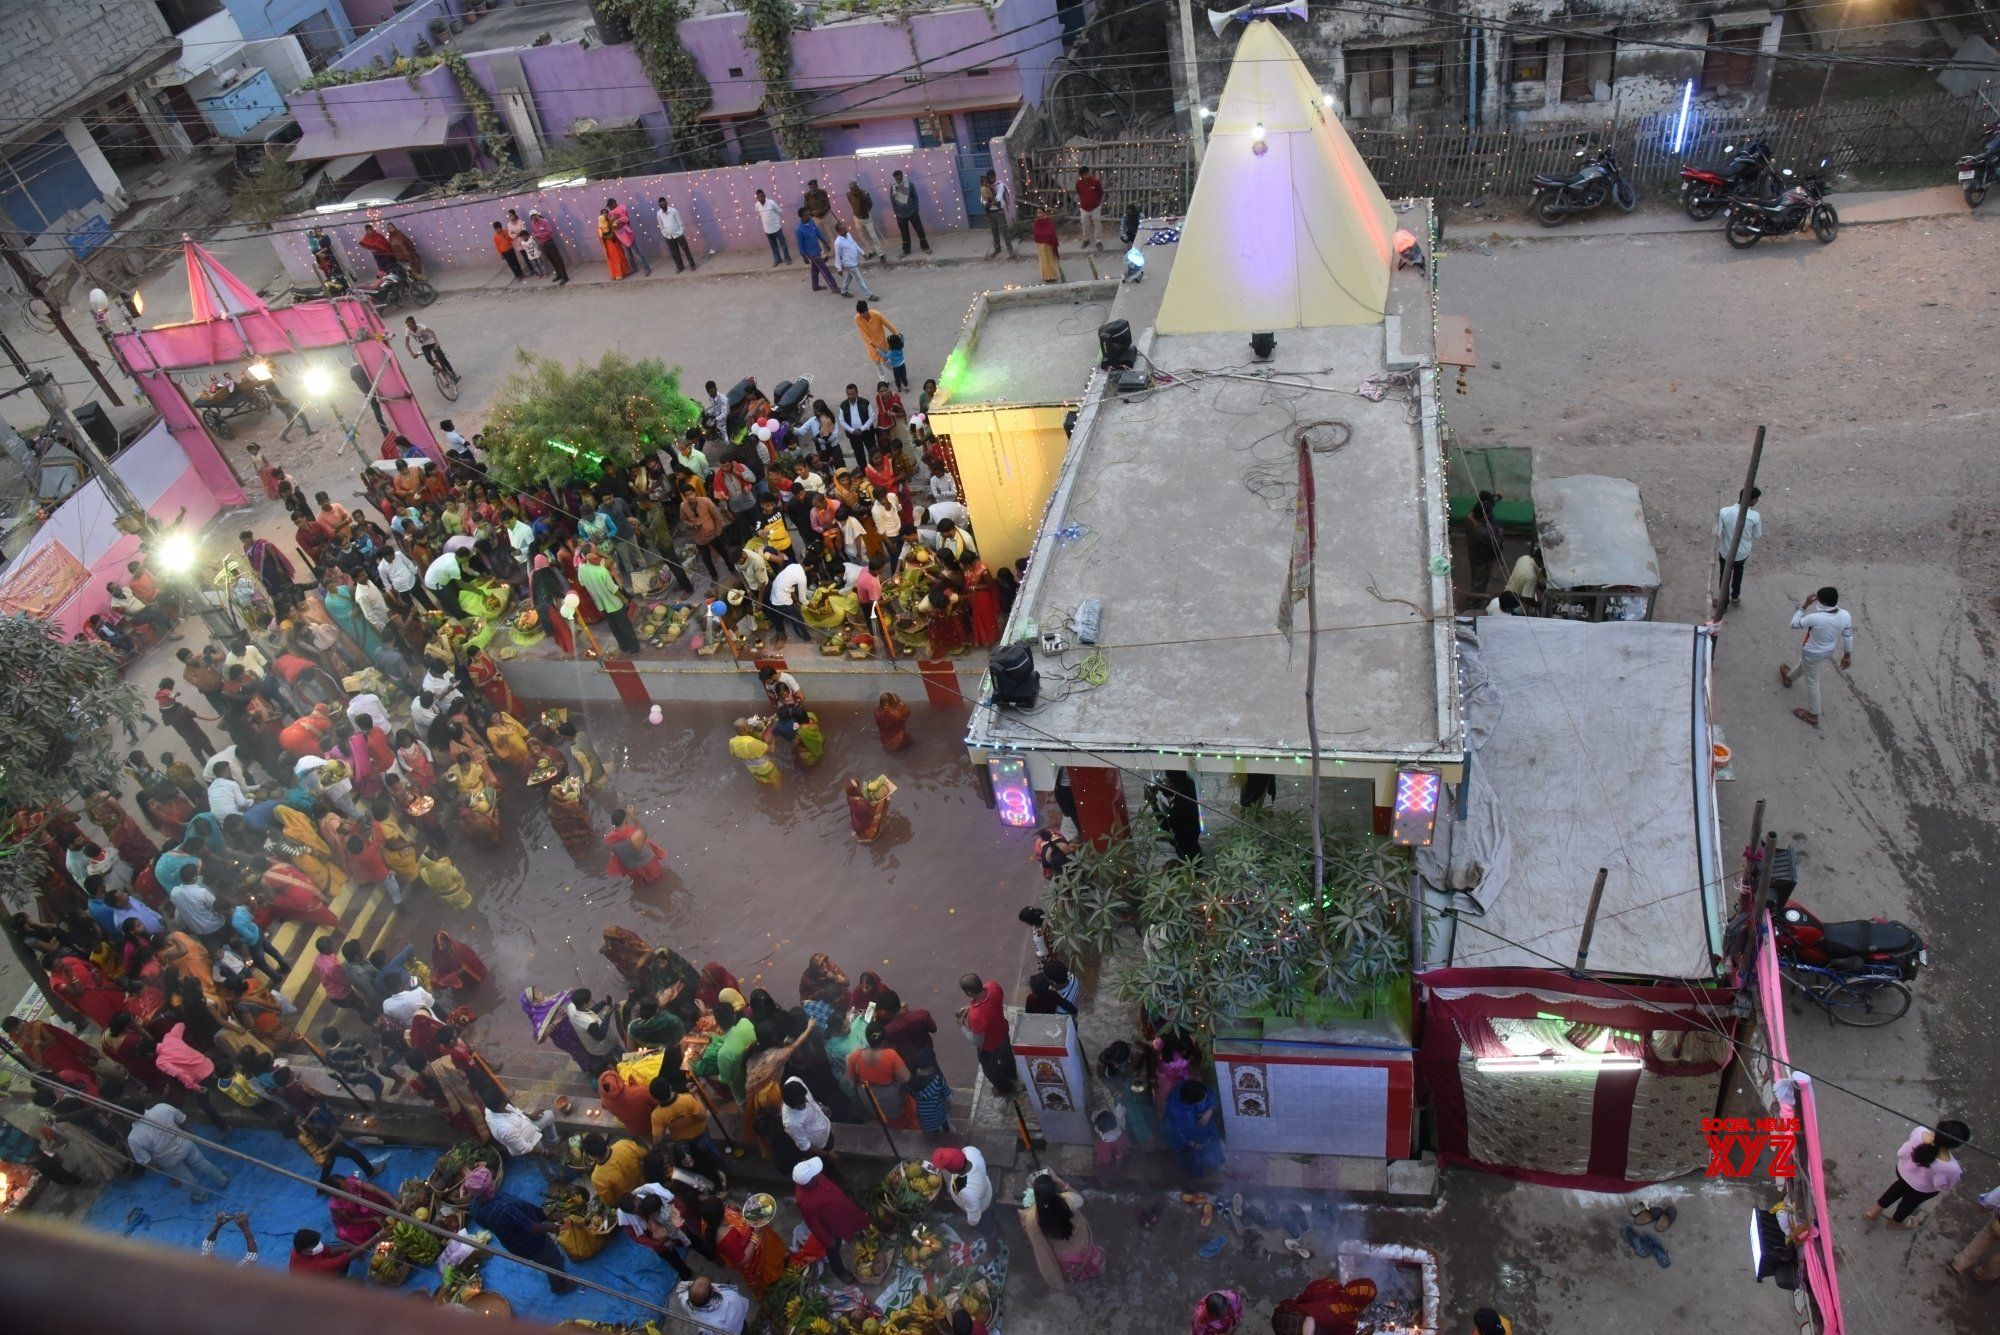 Patna: Devotees throng Surya Kripa temple in Kankarbagh for Chhath Puja celebrations #Gallery